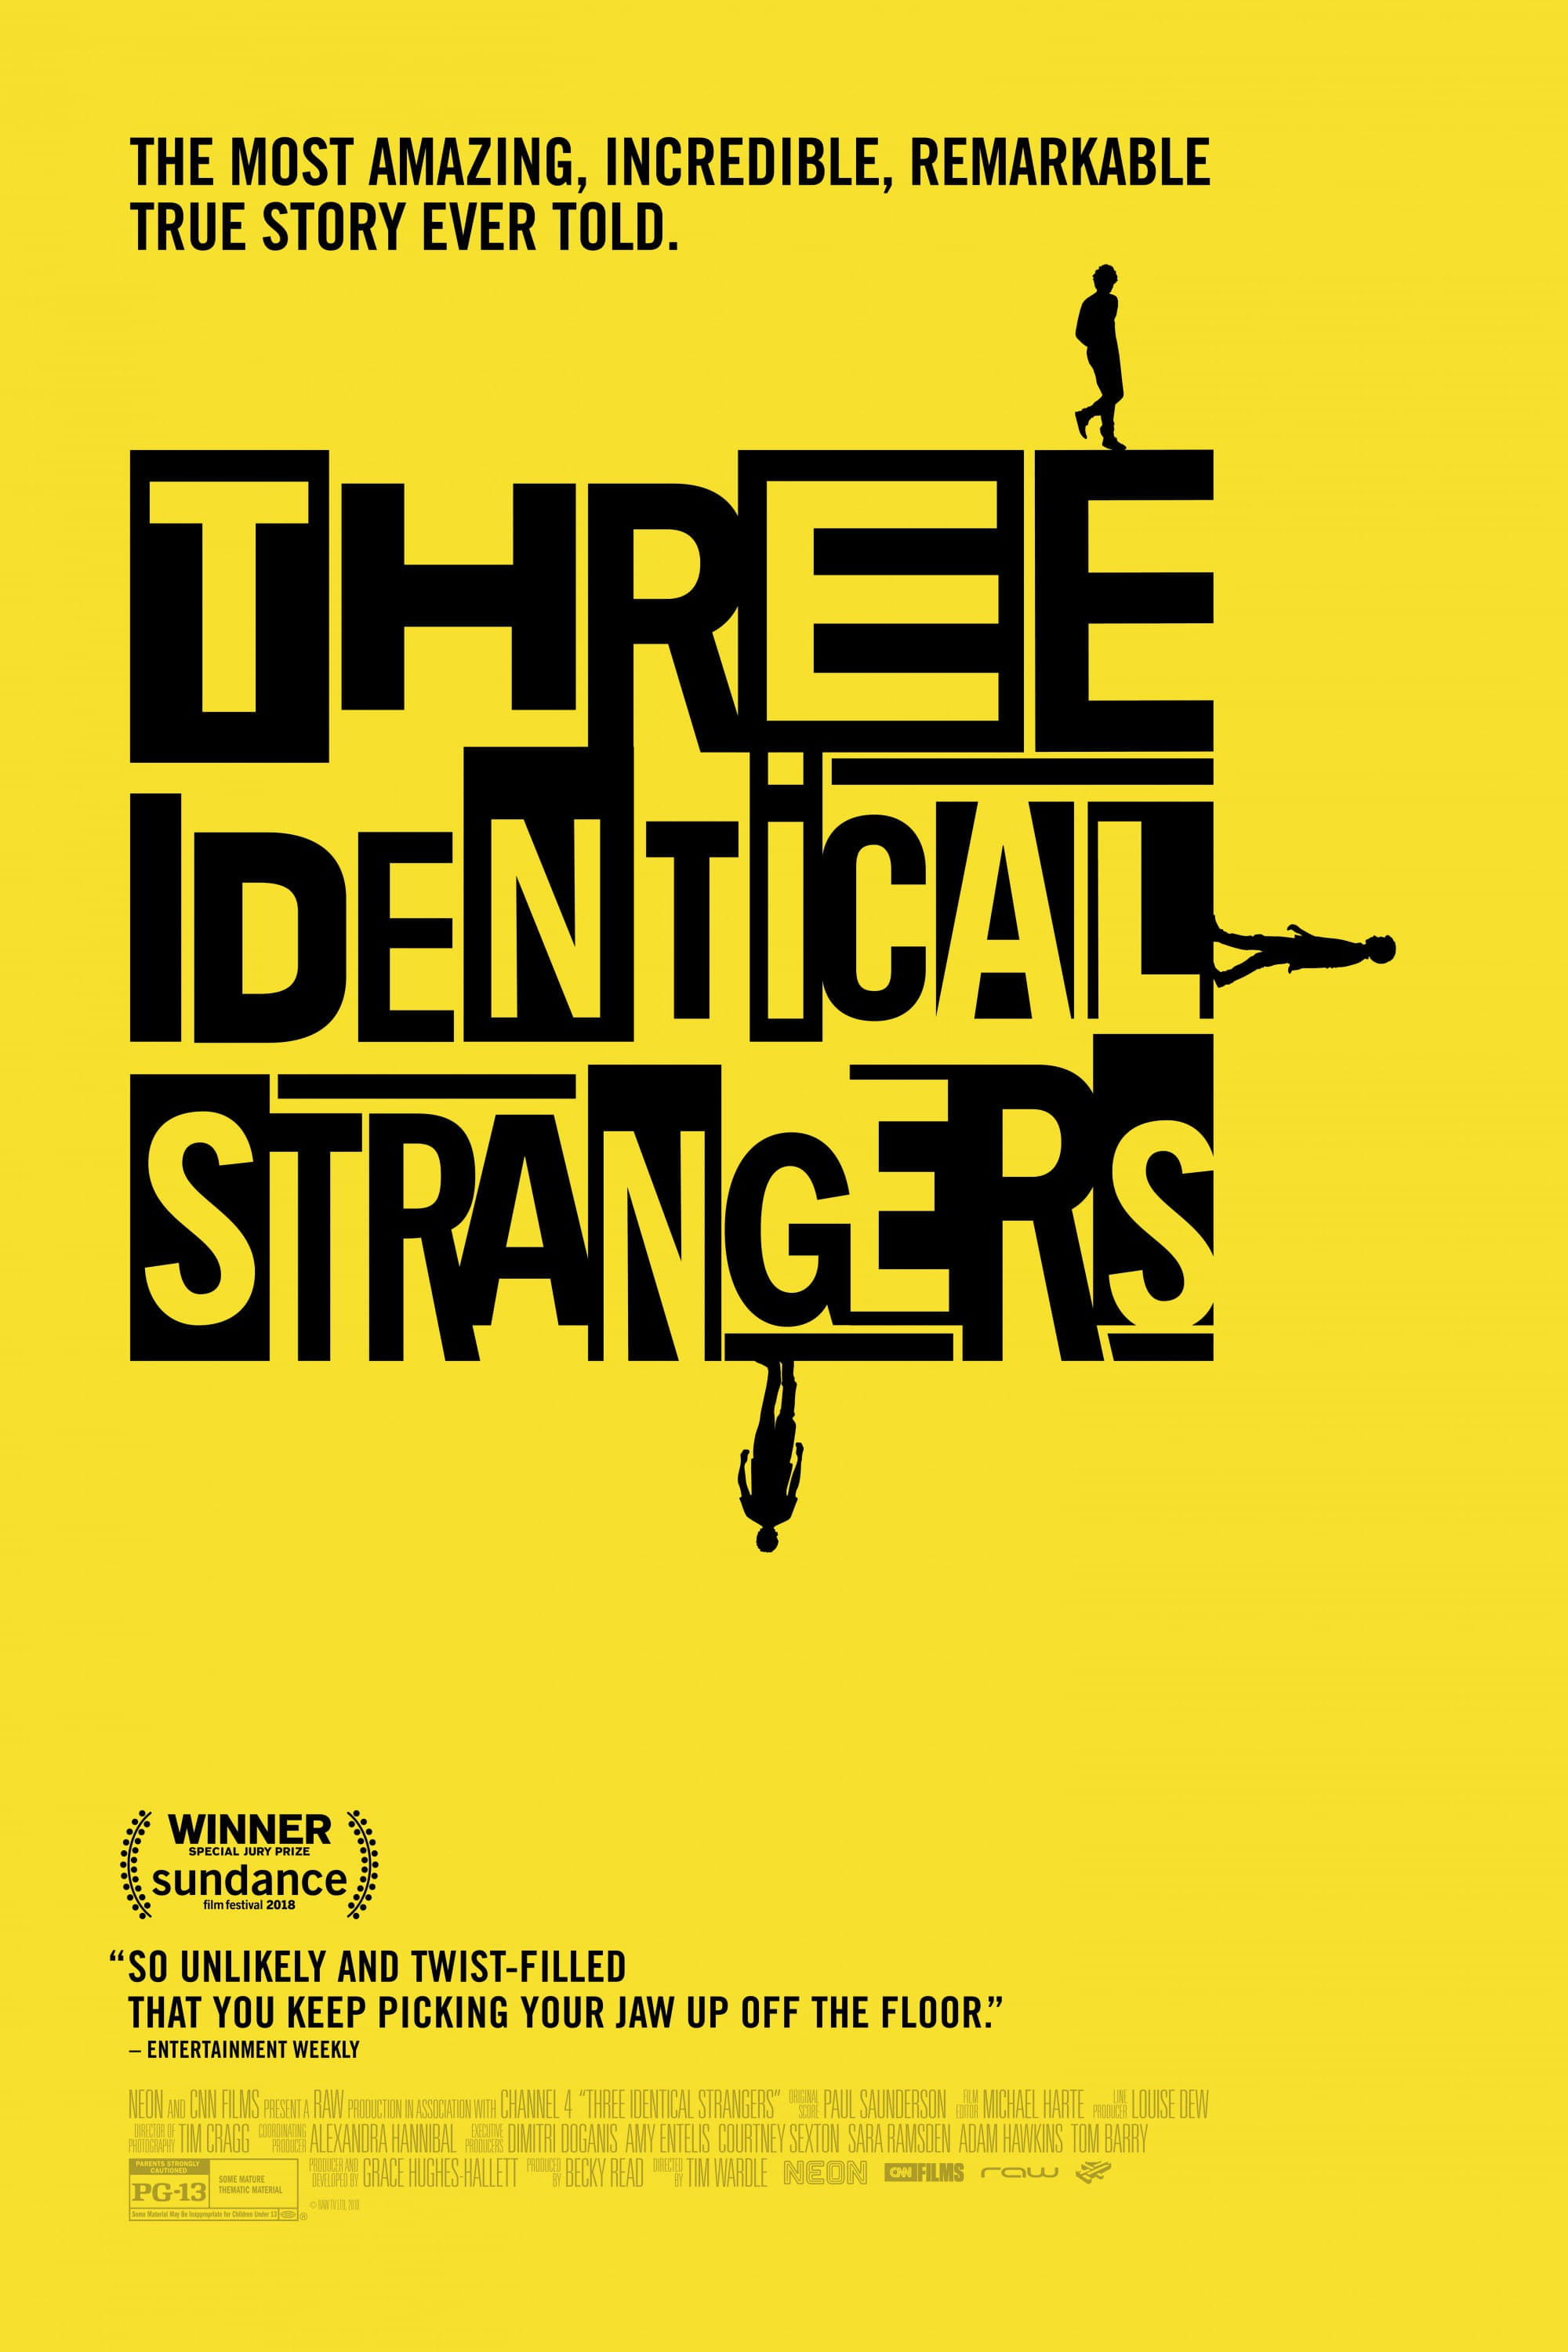 Poster and image movie Film Three Identical Strangers - Three Identical Strangers 2018